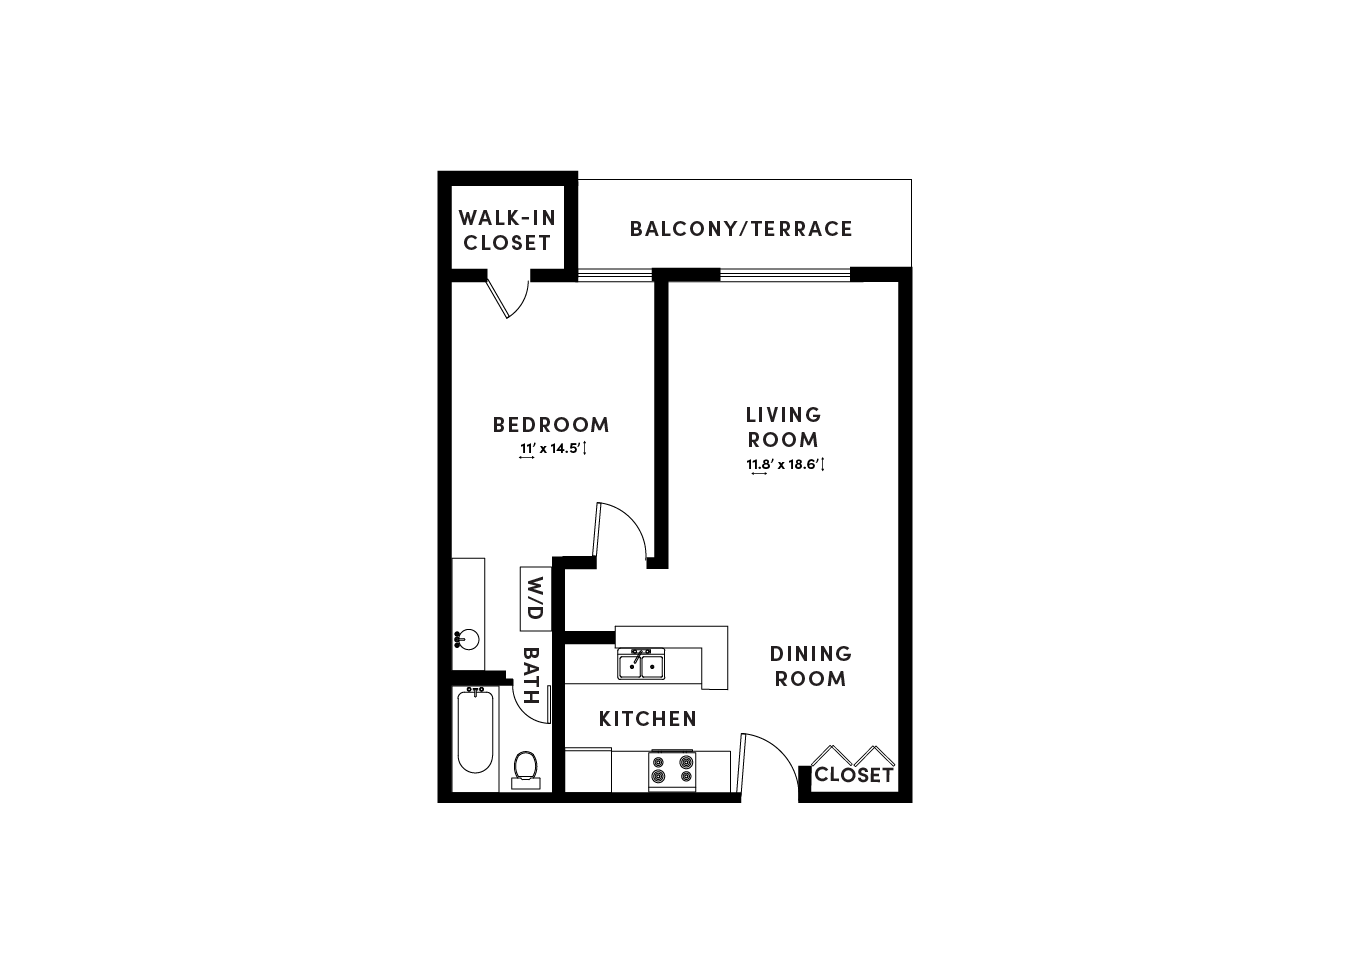 floor plan image of apartment_A319